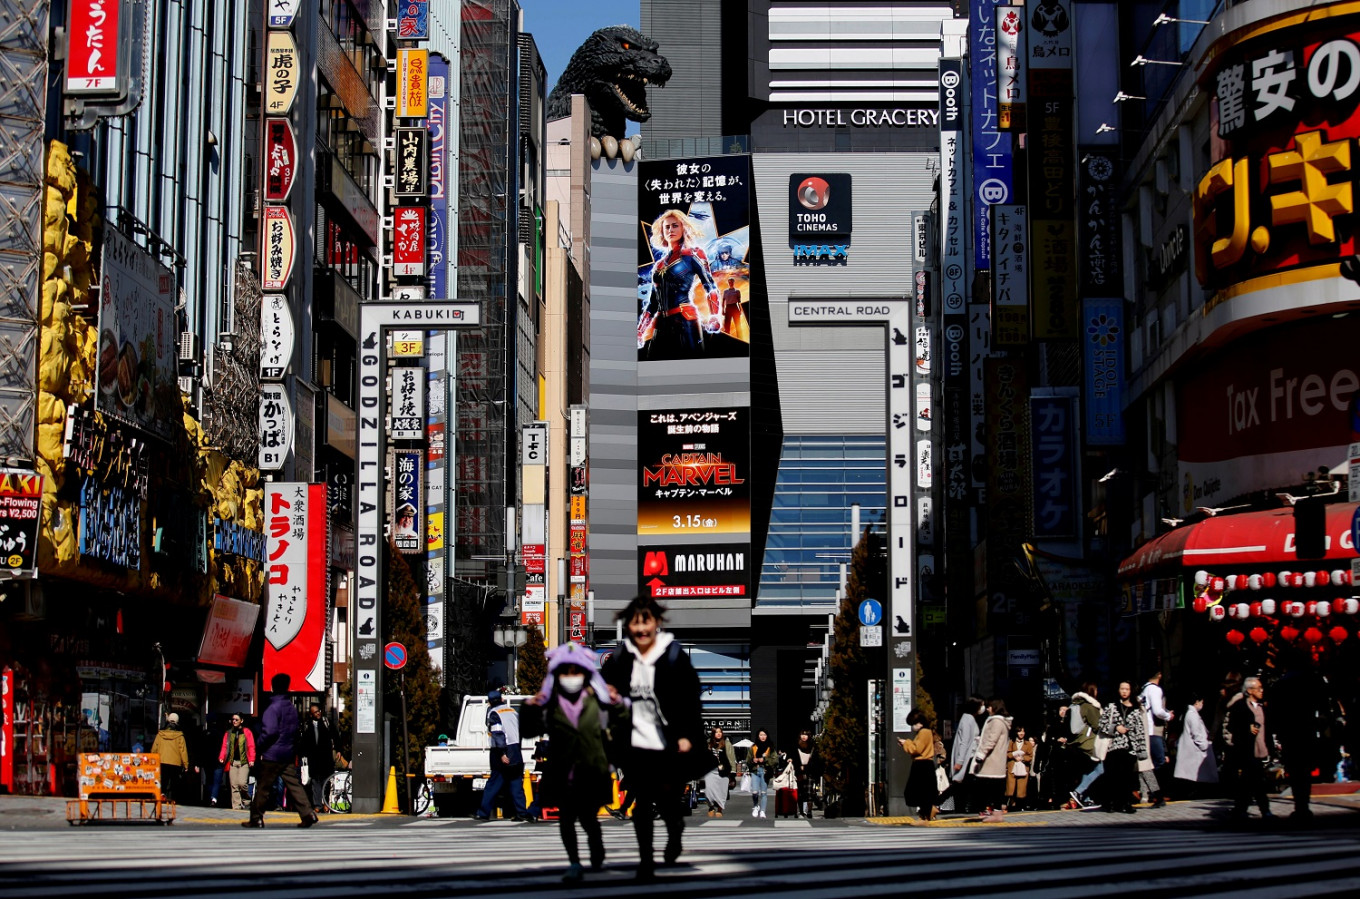 At the movies: 'Ben Hur' and 'Wizard of Oz' as Japan reopens